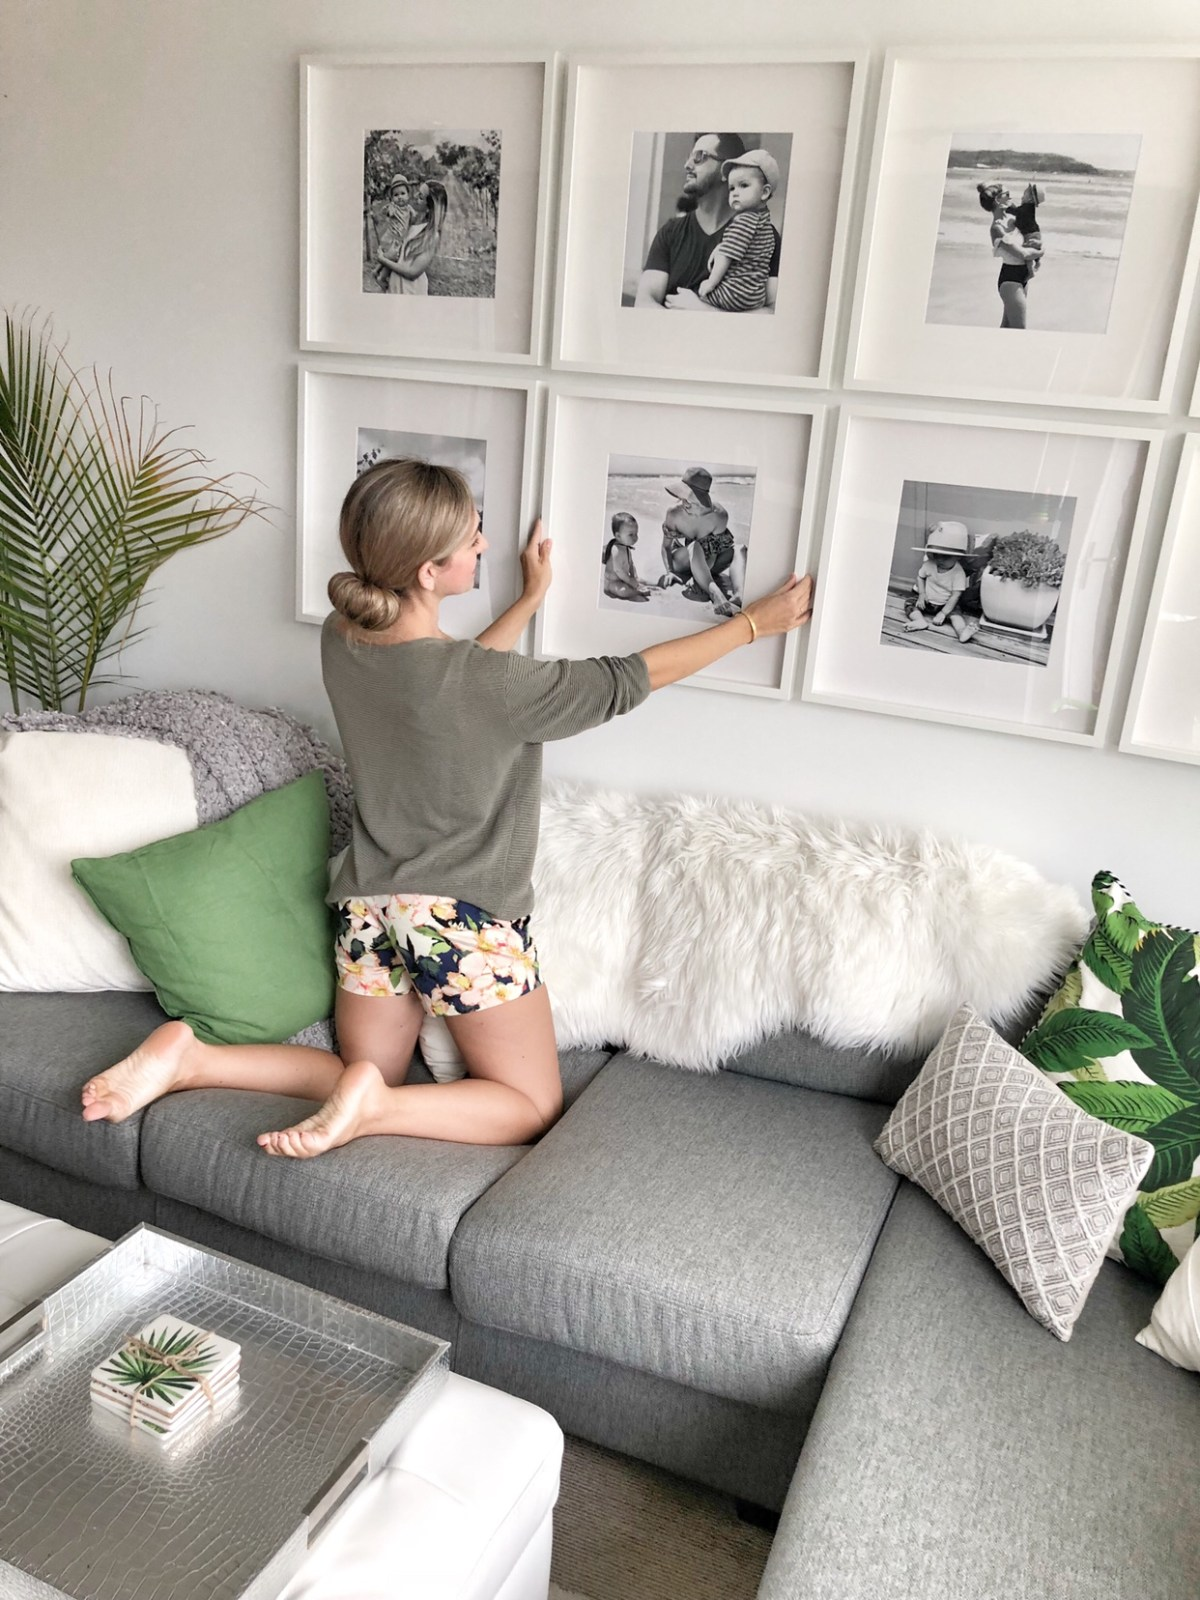 Family photo style gallery wall